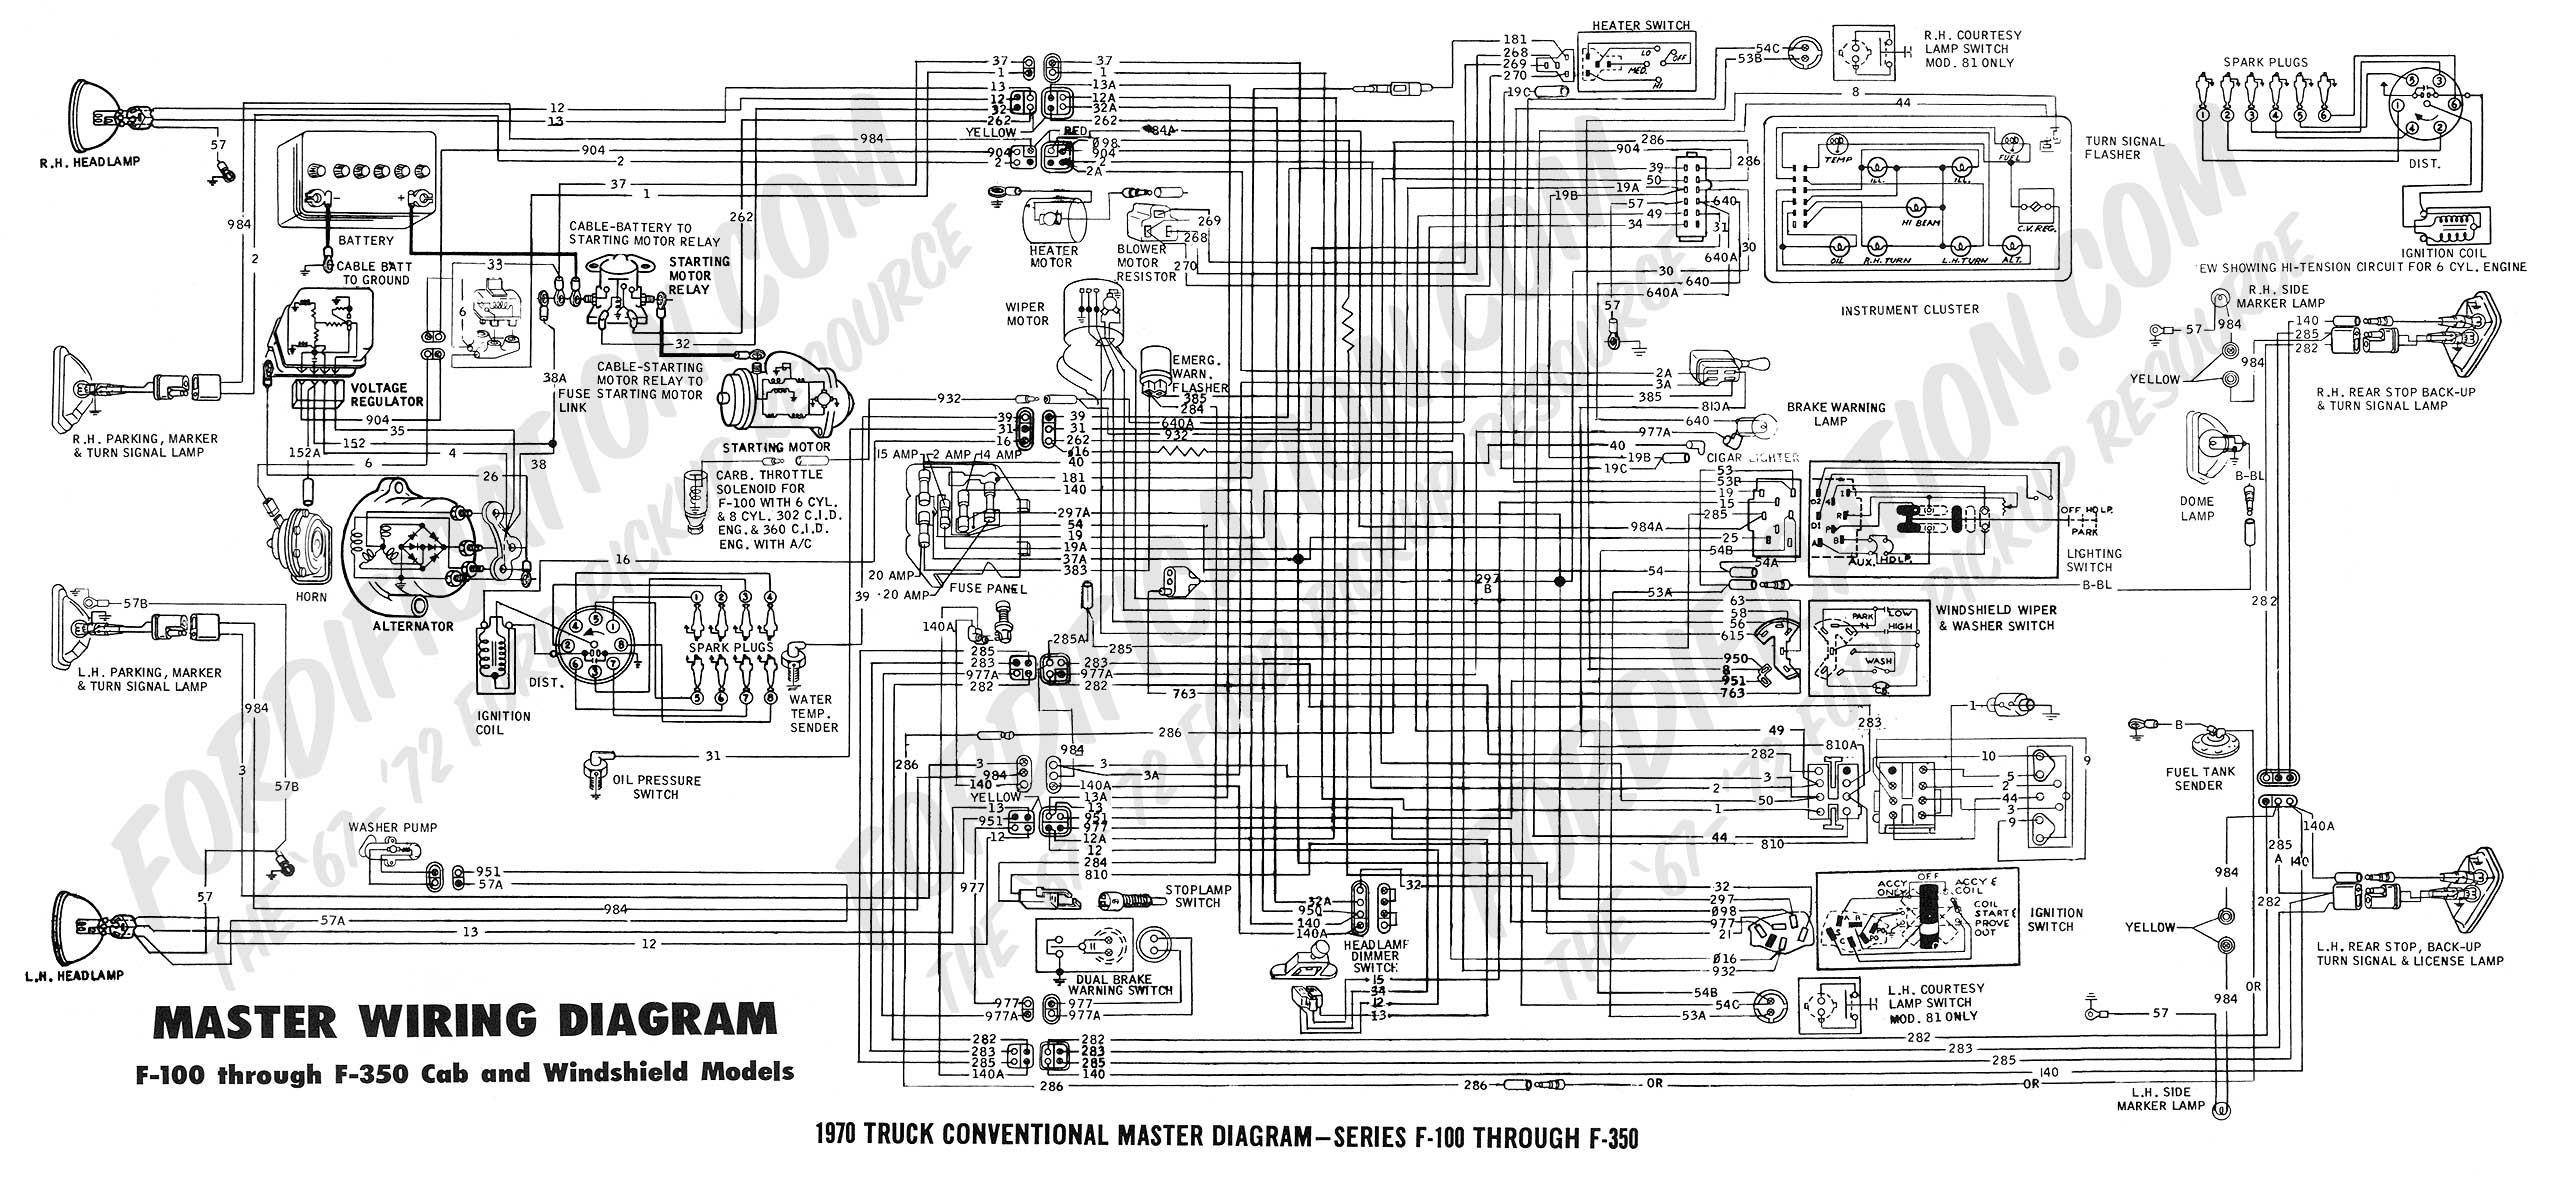 1997 dt466 starter wiring diagram 1997 ford f250 4 6 fuse diagram 1997 wiring diagrams online